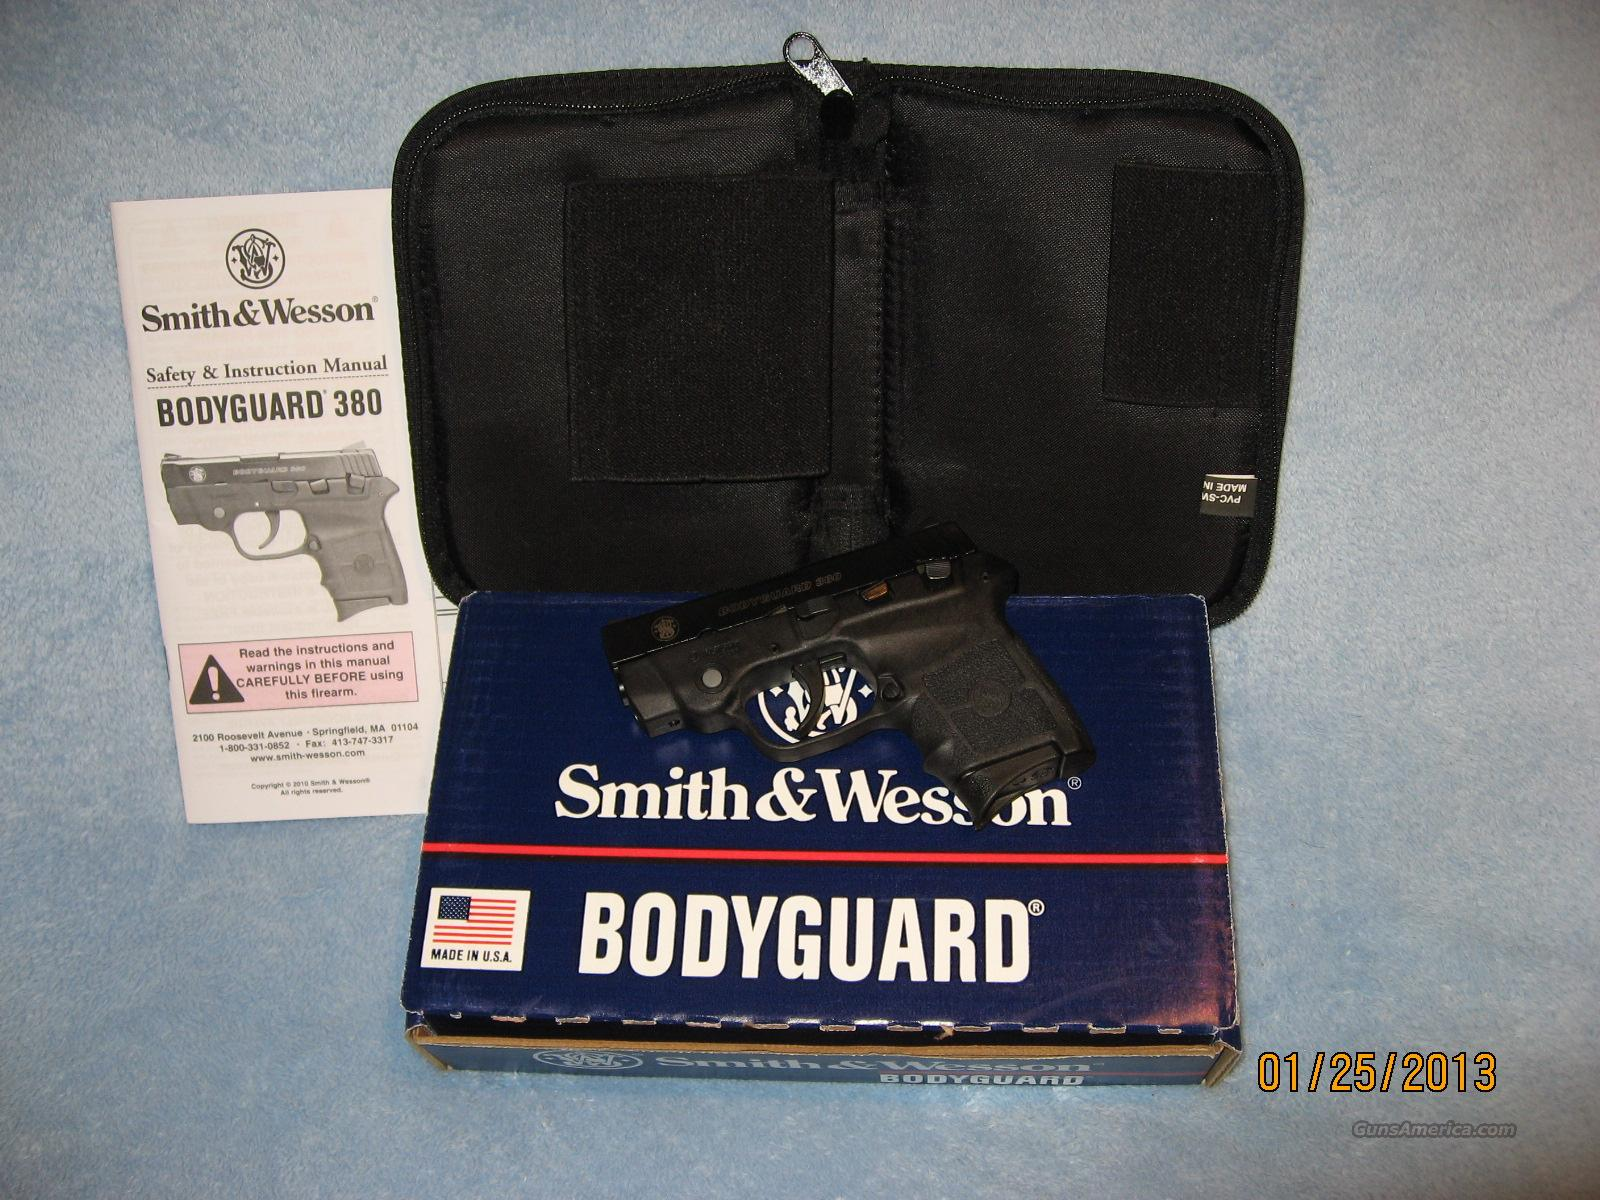 Smith & Wesson Bodyguard 380 acp/laser  Guns > Pistols > Smith & Wesson Pistols - Autos > Polymer Frame